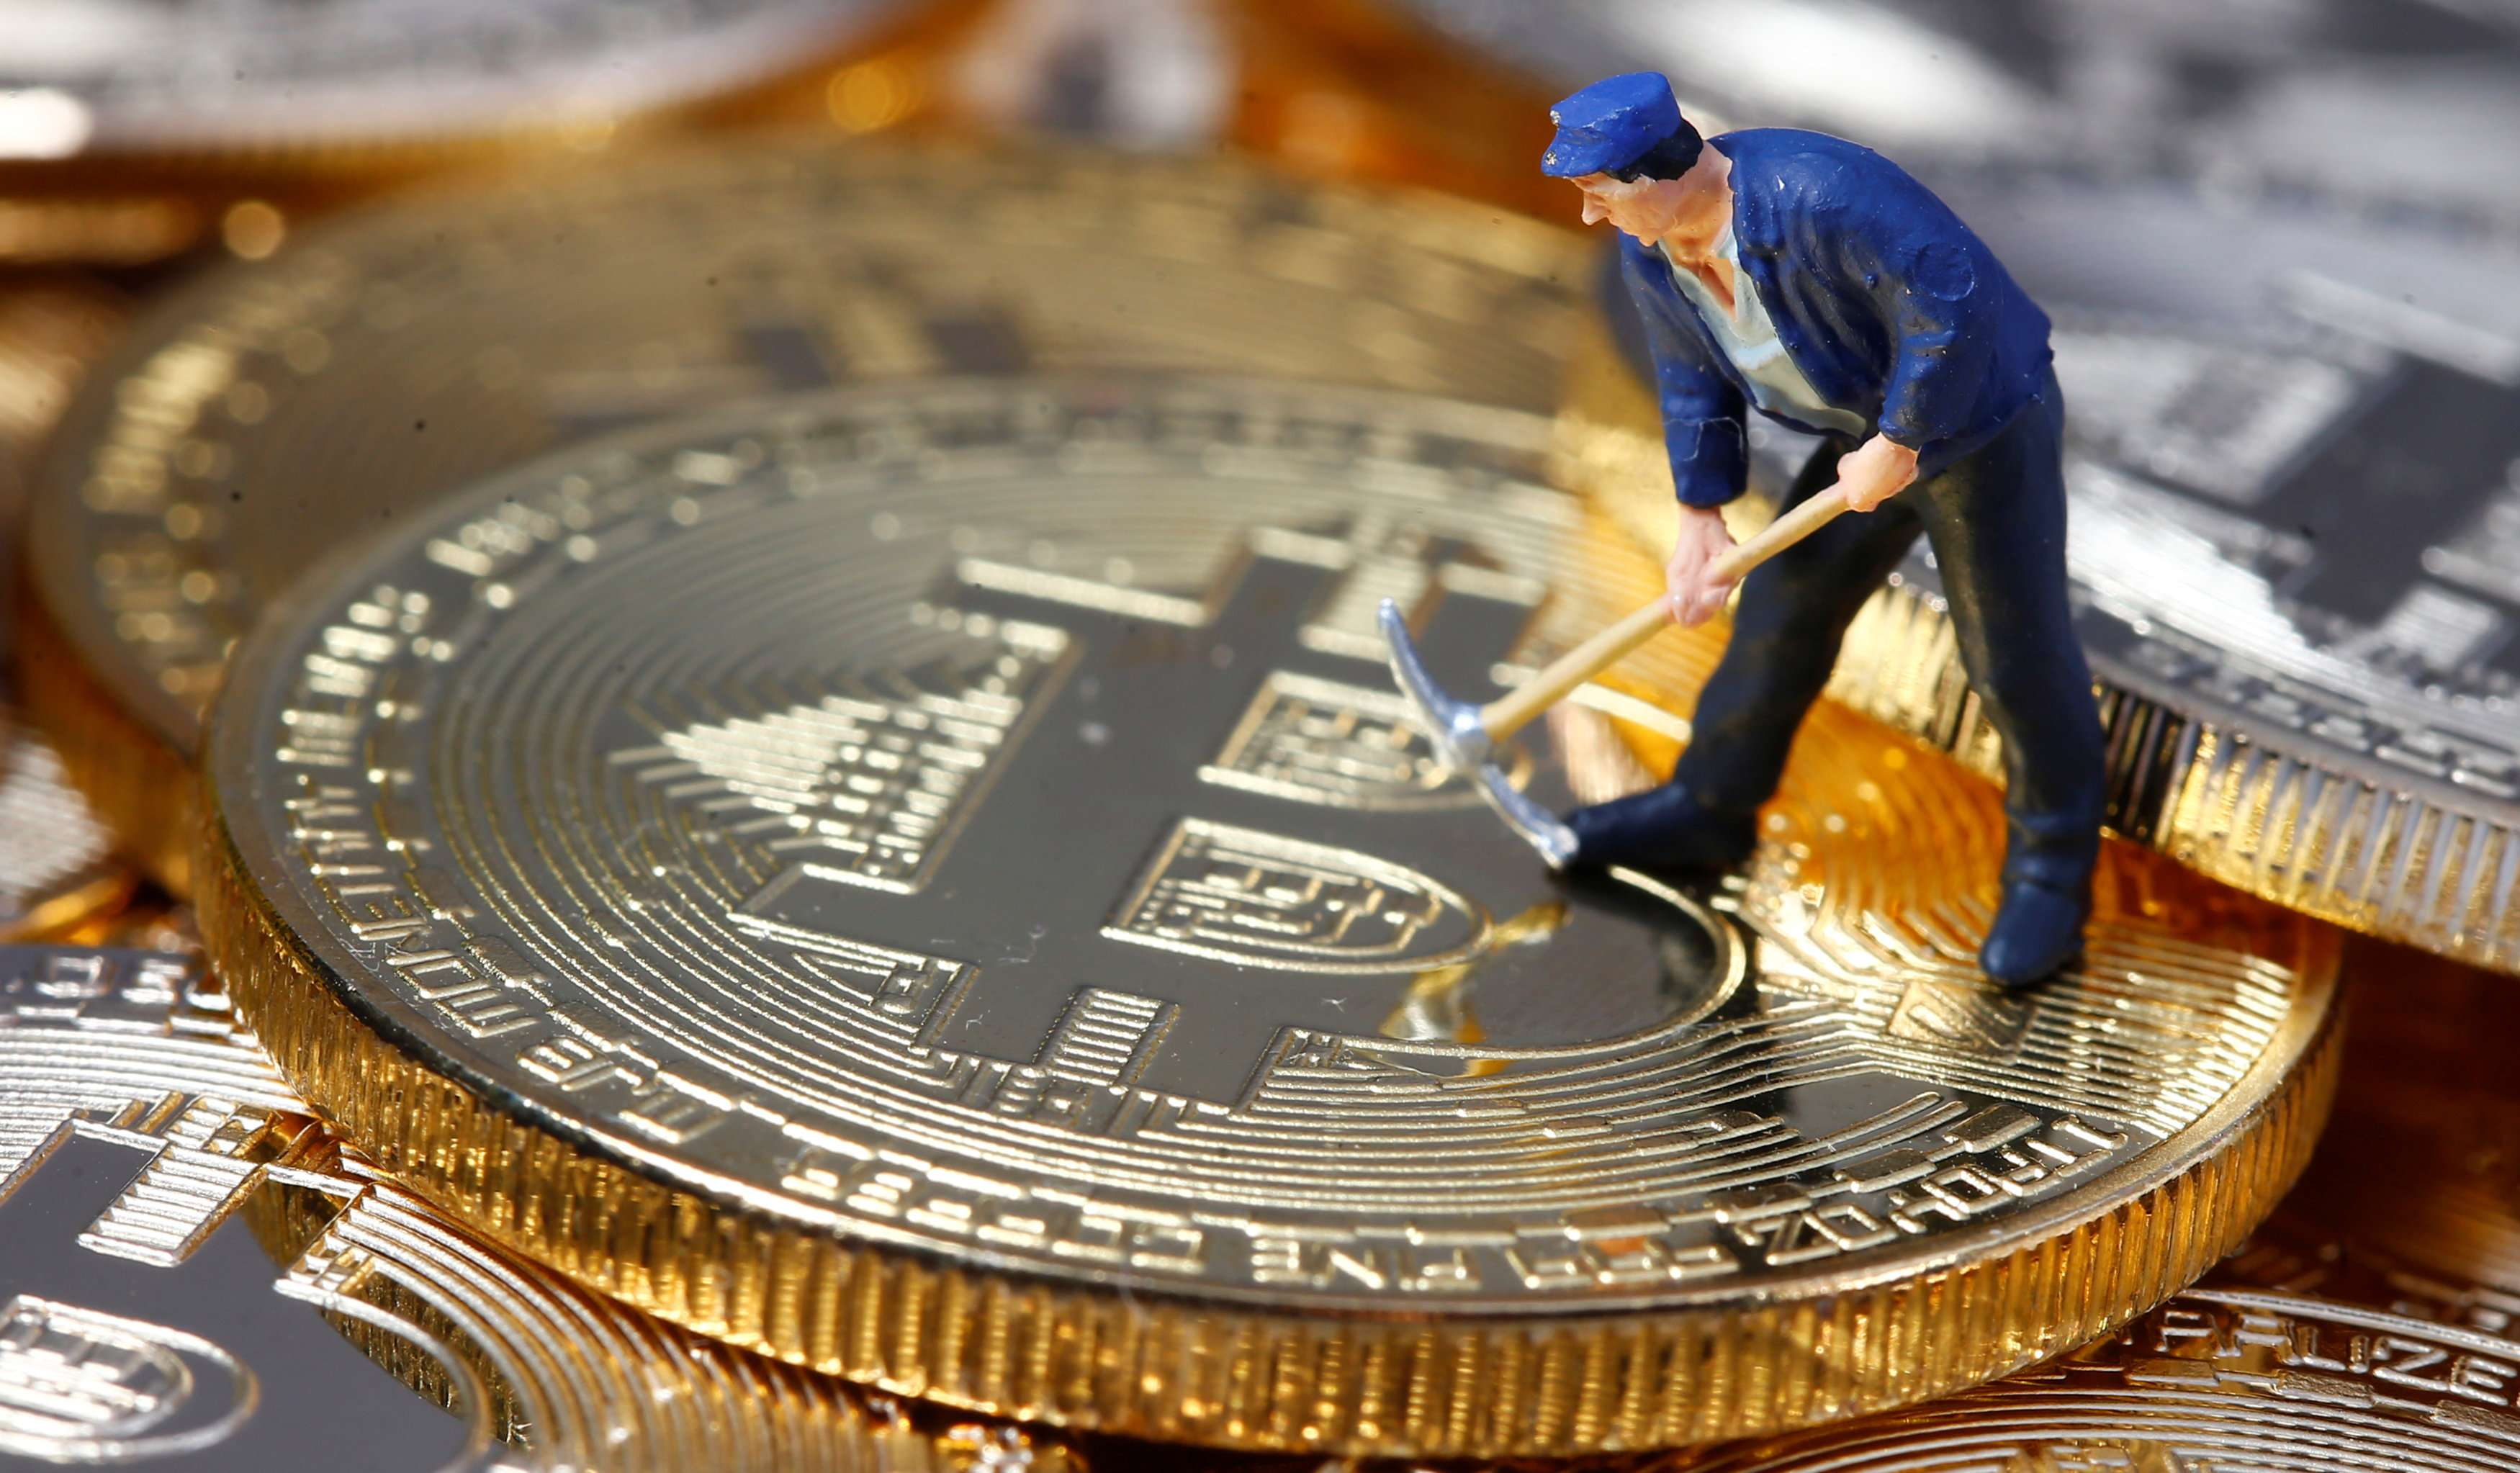 A small toy figure is seen on representations of the Bitcoin virtual currency in this illustration picture. (Reuters)